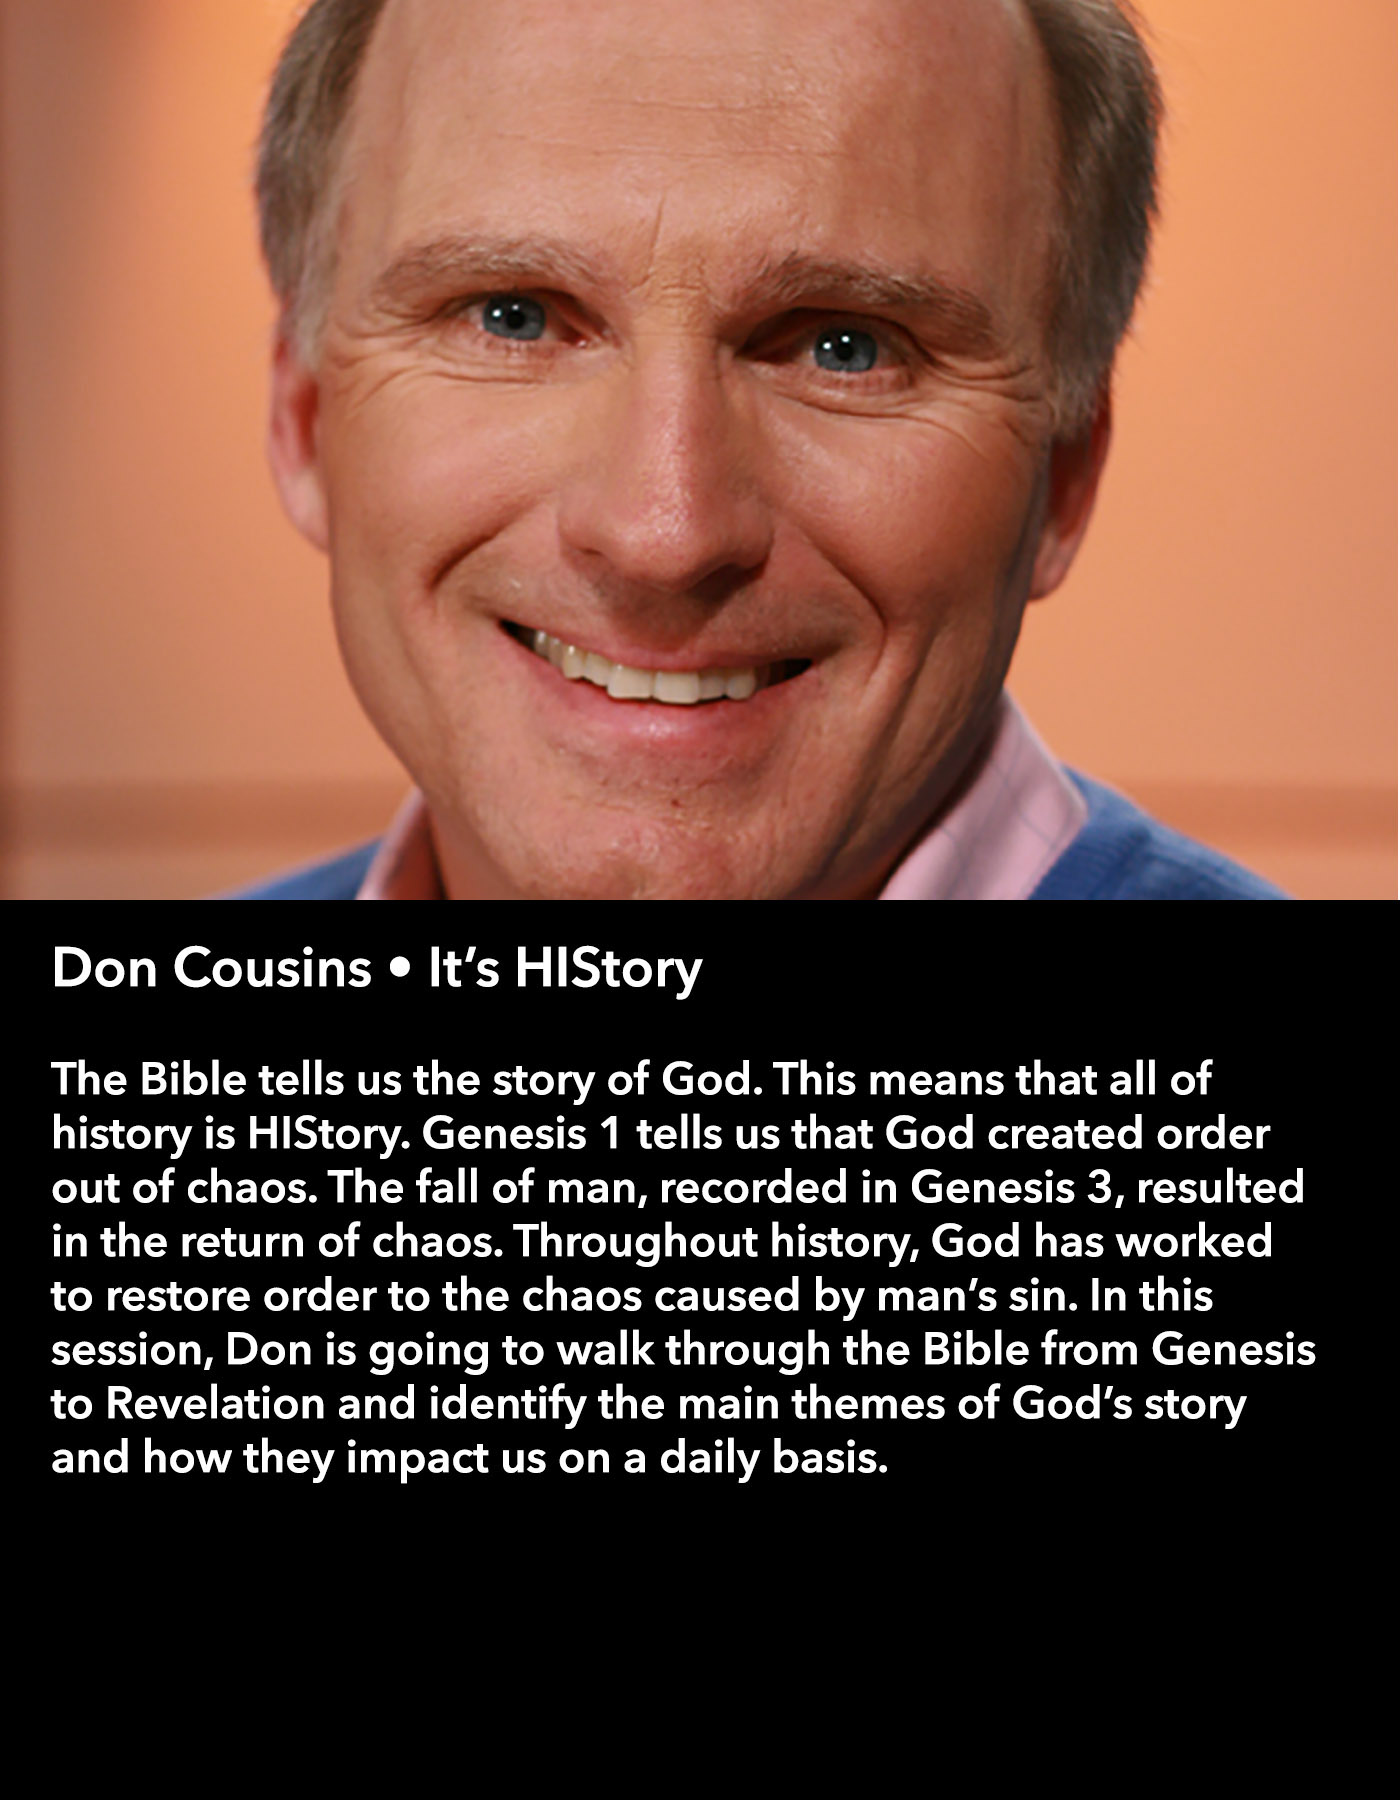 Don Cousins • It's HIStory • Saturday Morning, March 18 • 10:30 – 11:45 am